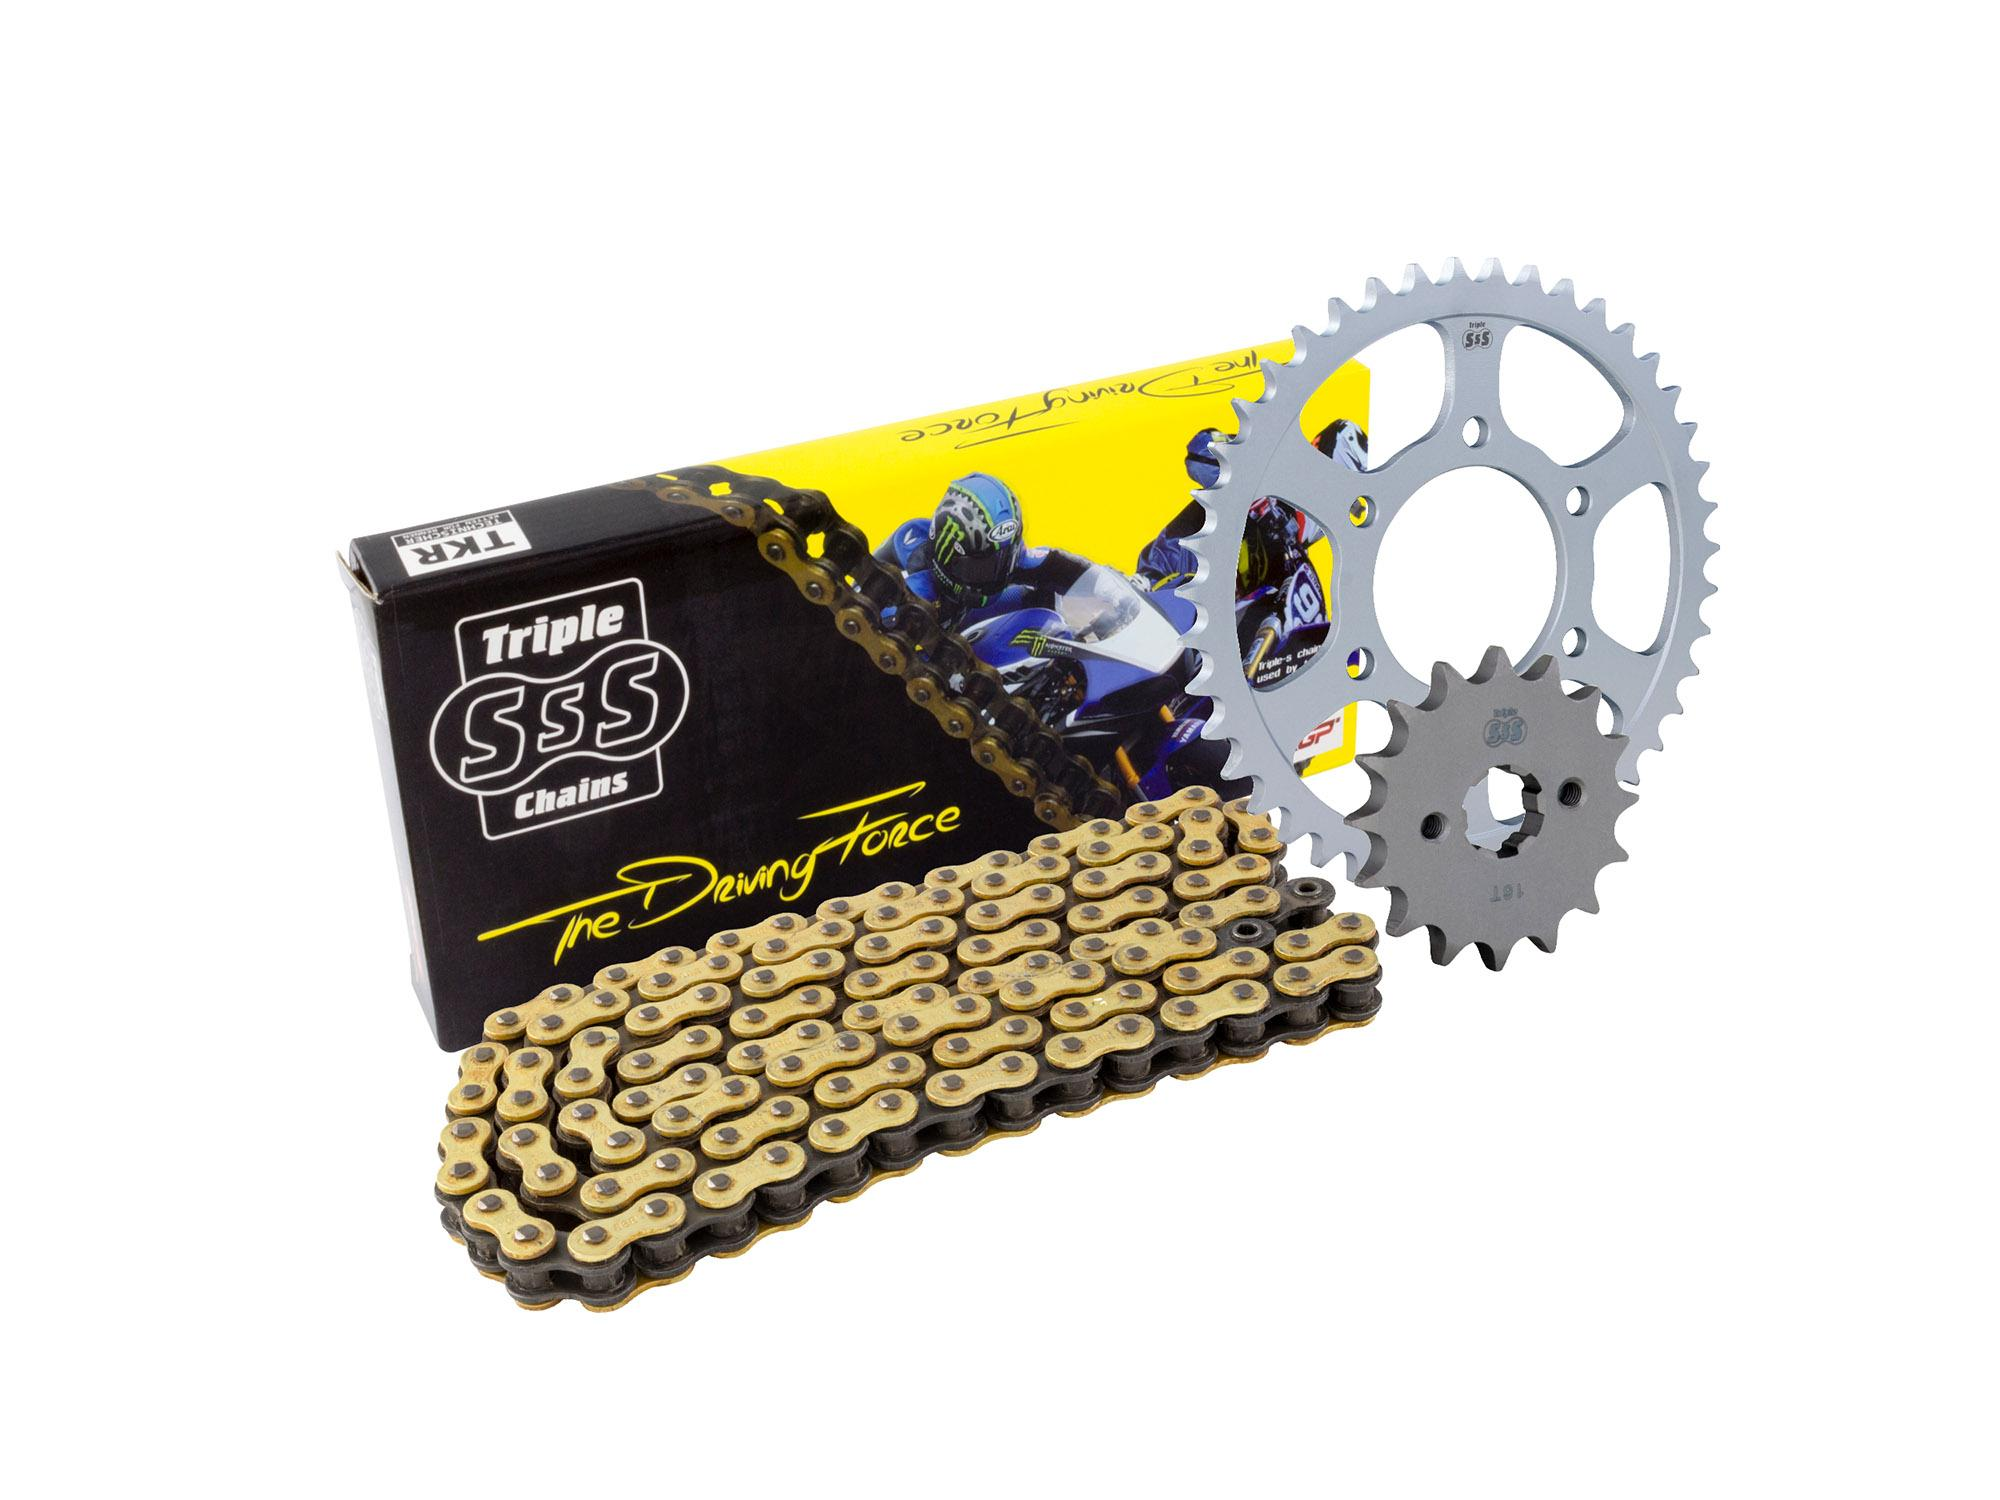 Kawasaki ZX-10R E8F-FAF Ninja 08-10 Chain & Sprocket Kit: 17T Front, 41T Rear, HD O-Ring Gold Chain 525H 110Link